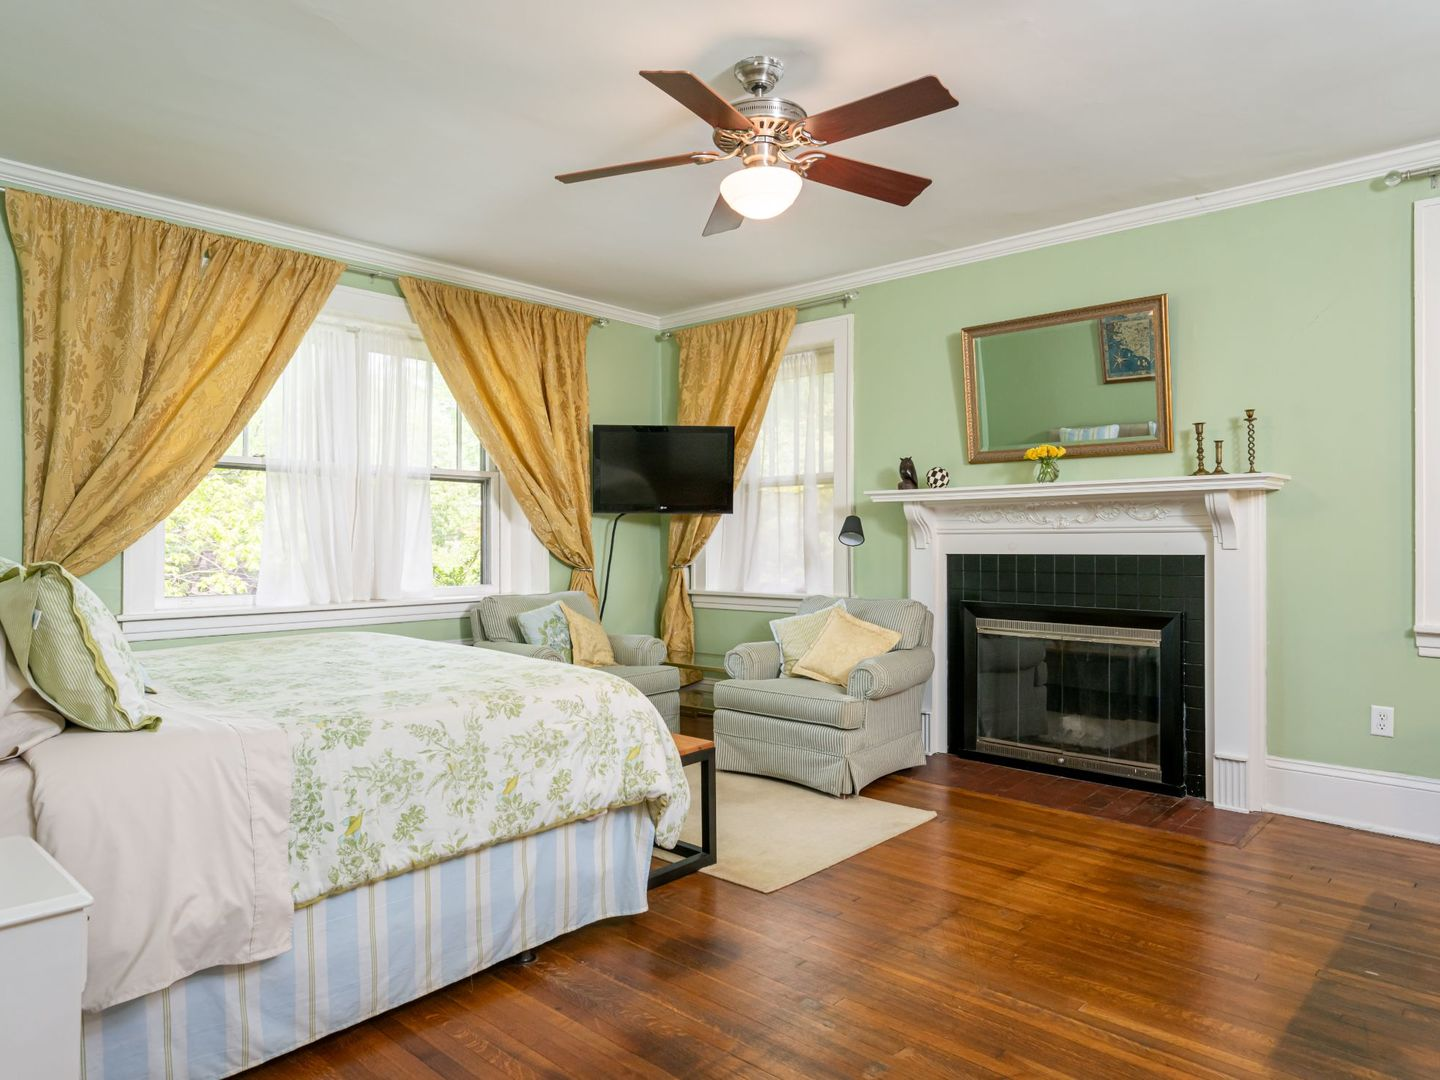 A bedroom with a large bed in a room at Sweet Biscuit Inn.